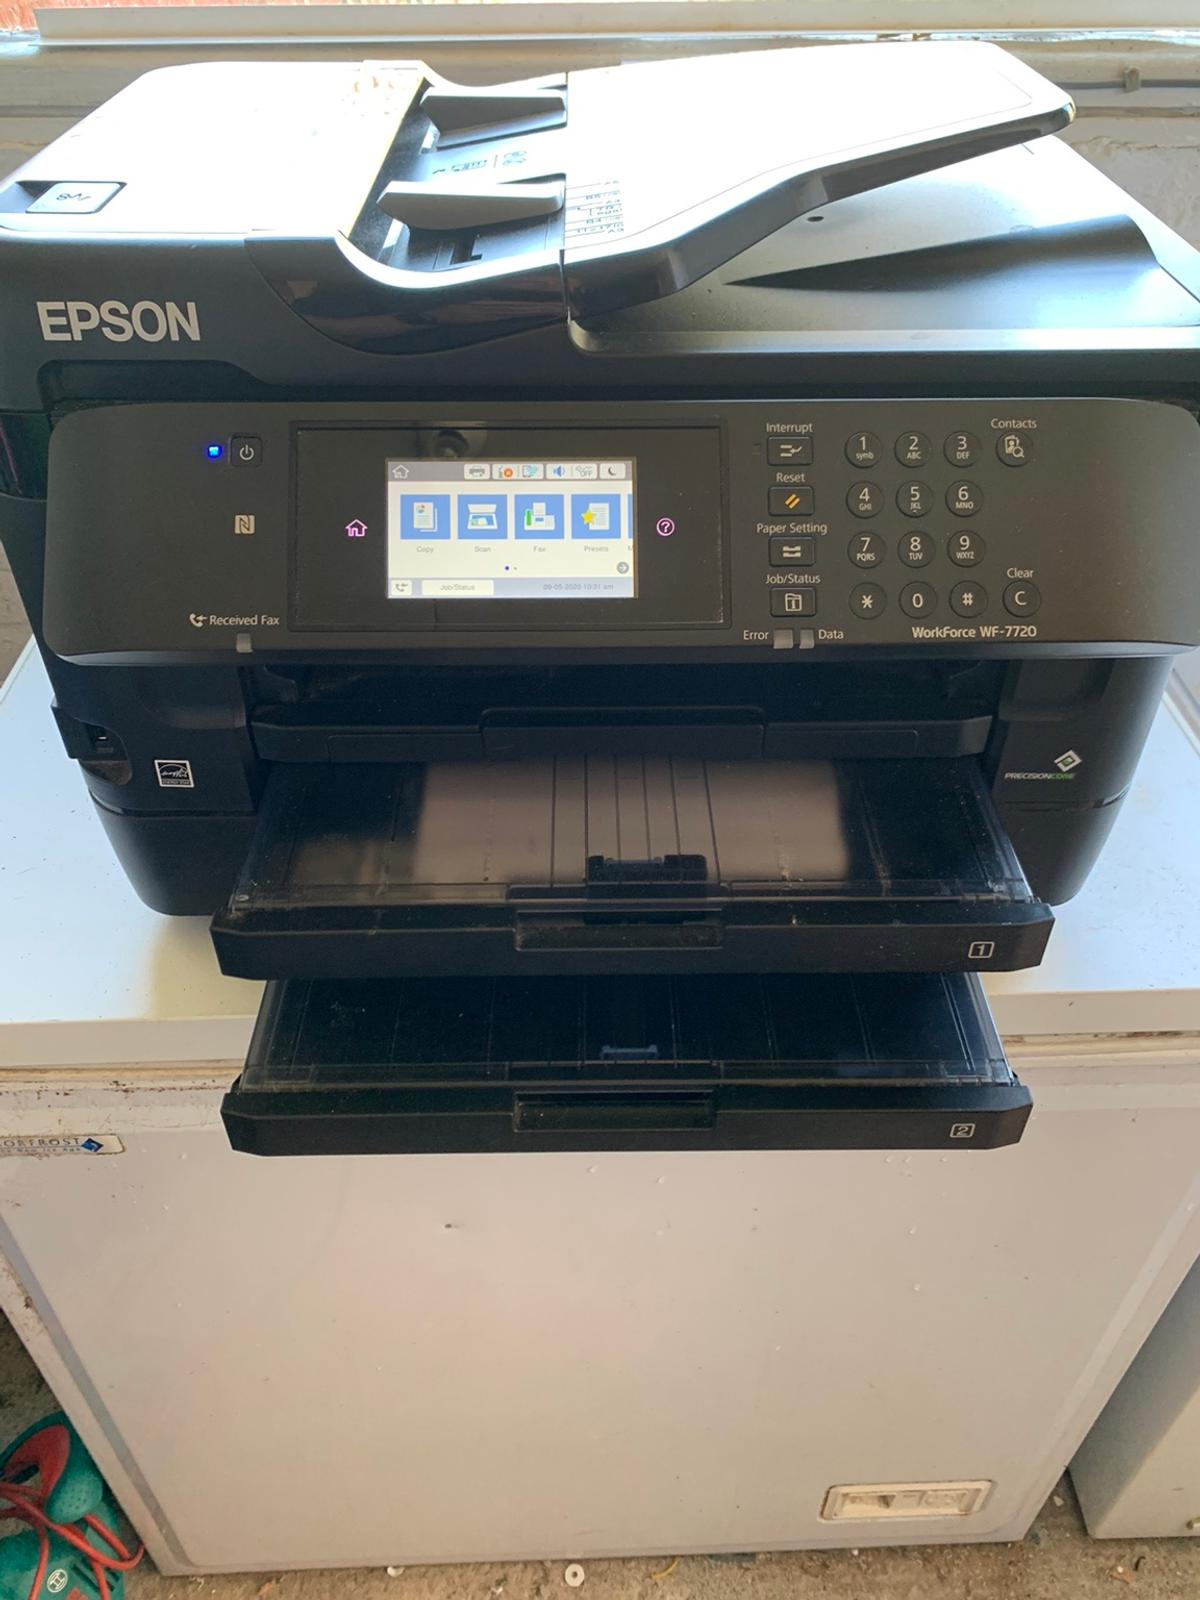 Epson work force 7720 printer A3 and A4 scanner with WiFi Two cassette printer 5 sets of ink 3 genuine Epson 2 comparable Only a few months old  Collection only